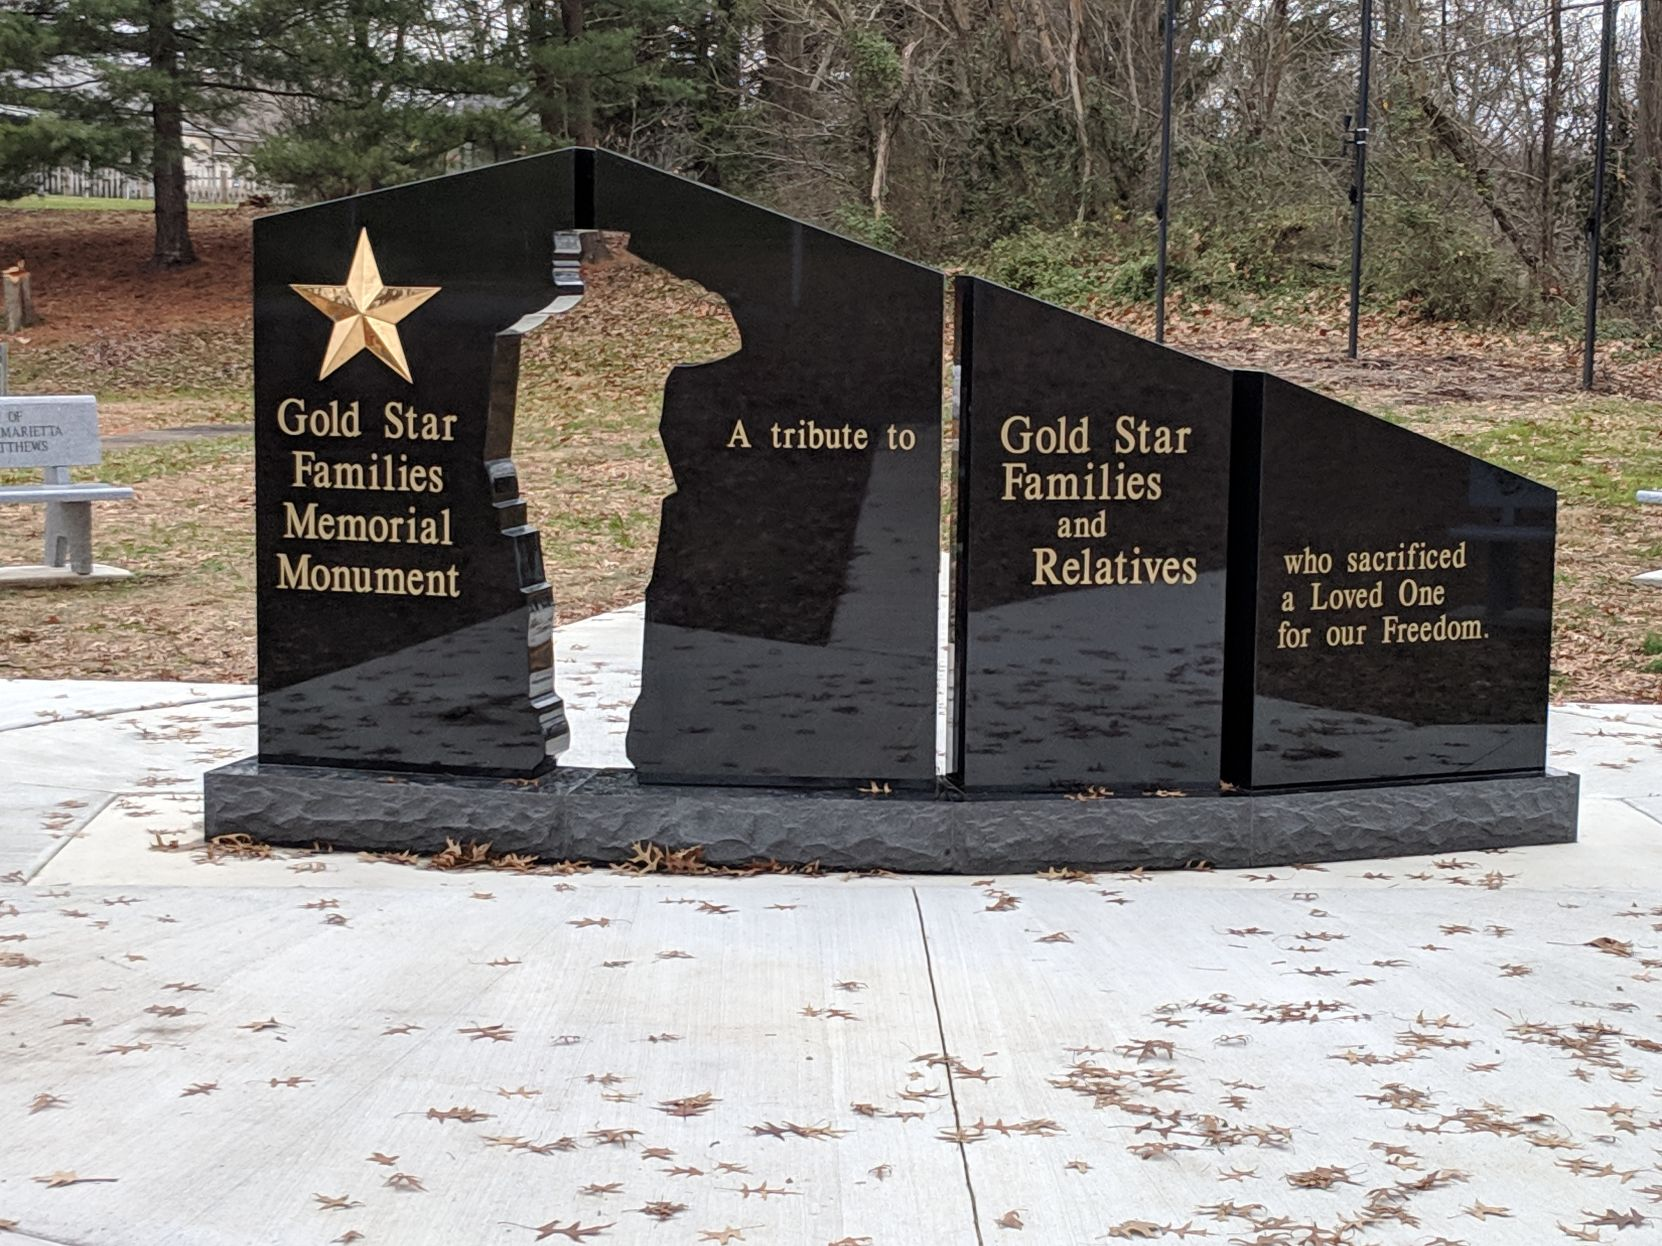 Groundbreaking for Gold Star Families Memorial Monument in Mansfield set July 6